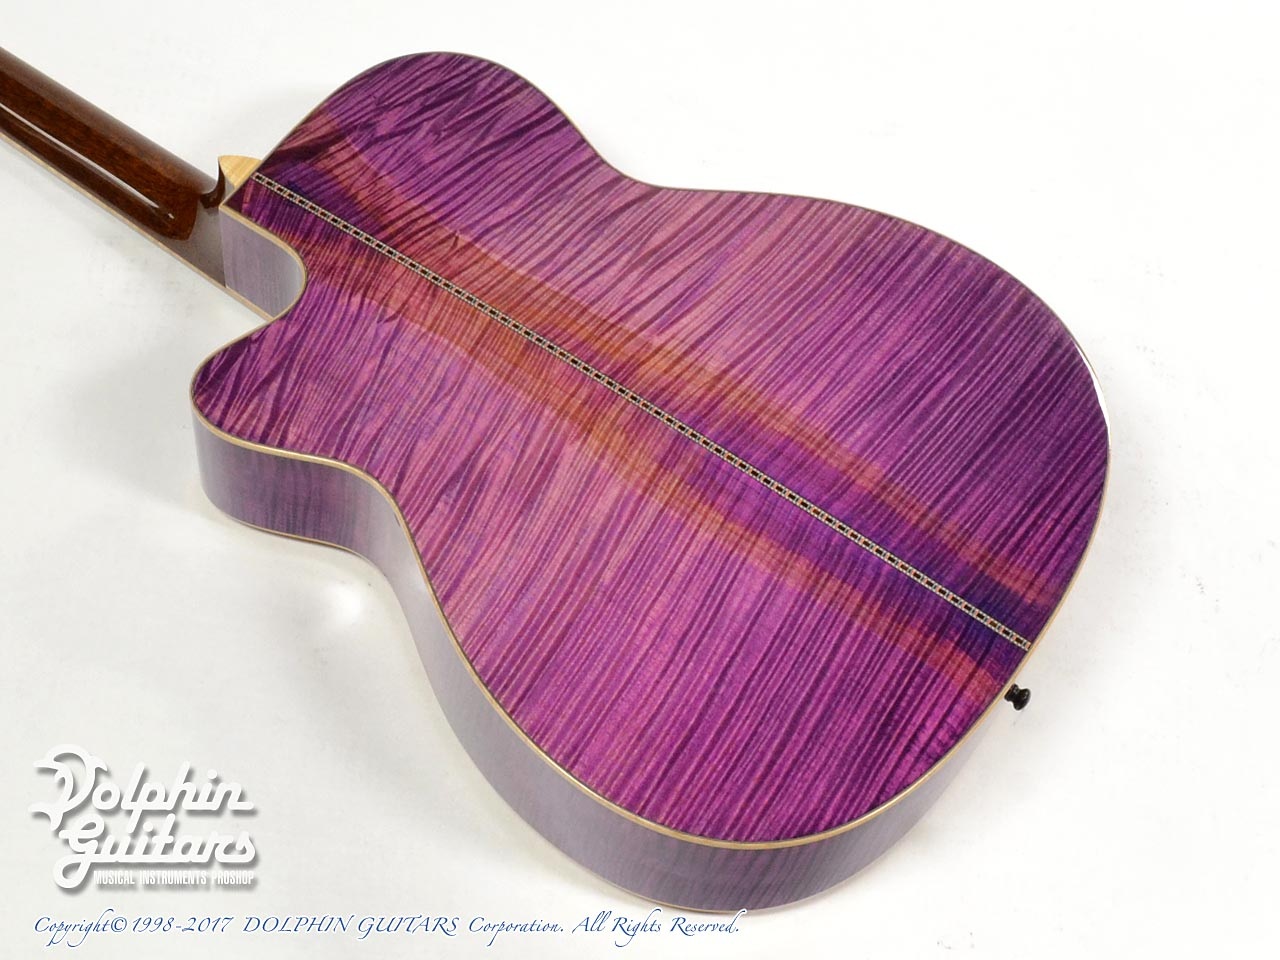 SWITCH: SCOM-3C E-FM (Engelmann Spruce & Flame Maple) (Murasakishikibu) (4)